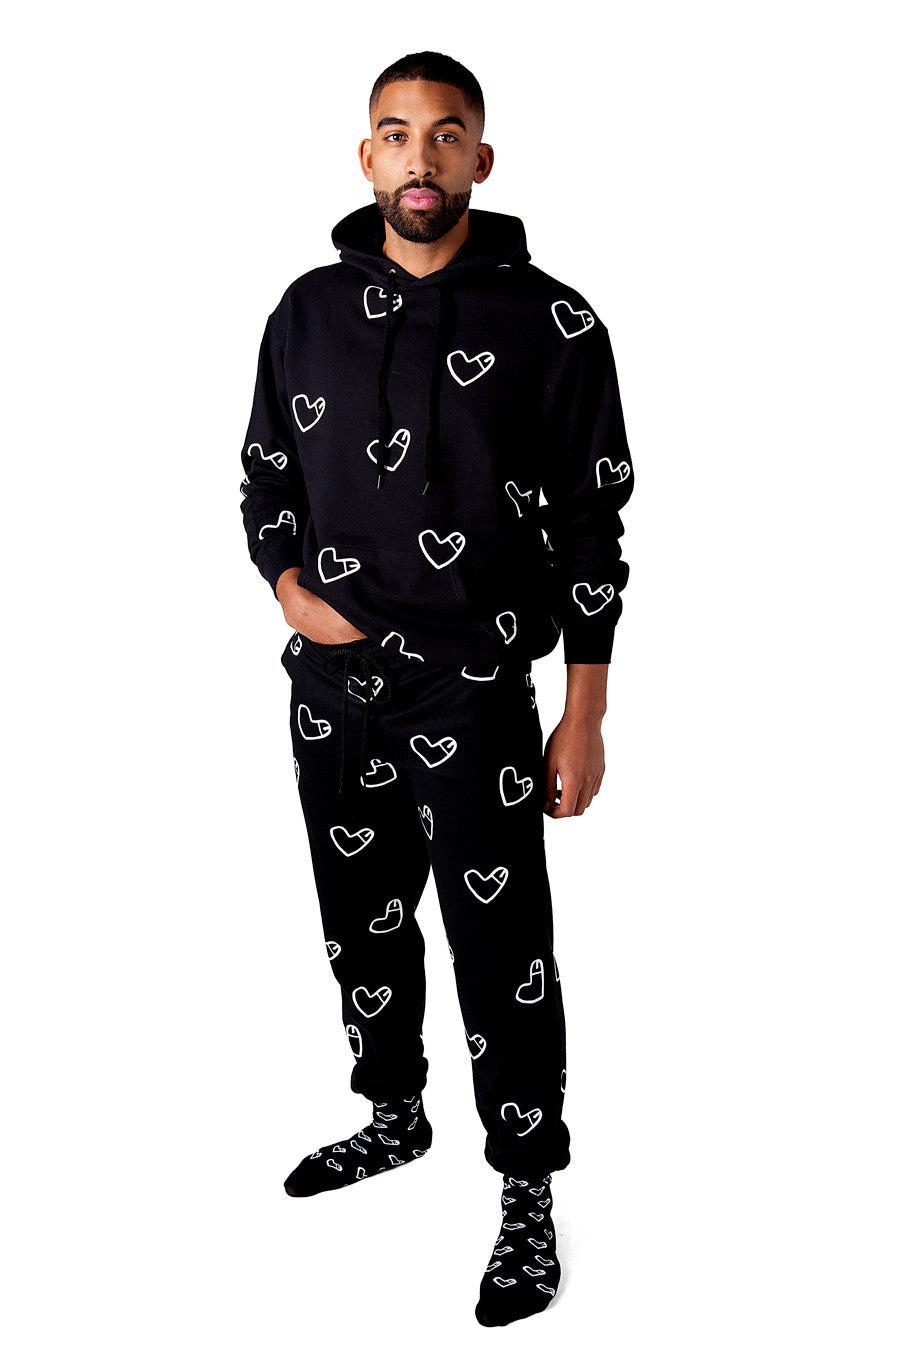 SET Cockhearts Hoodie + Sweatpants + Socks